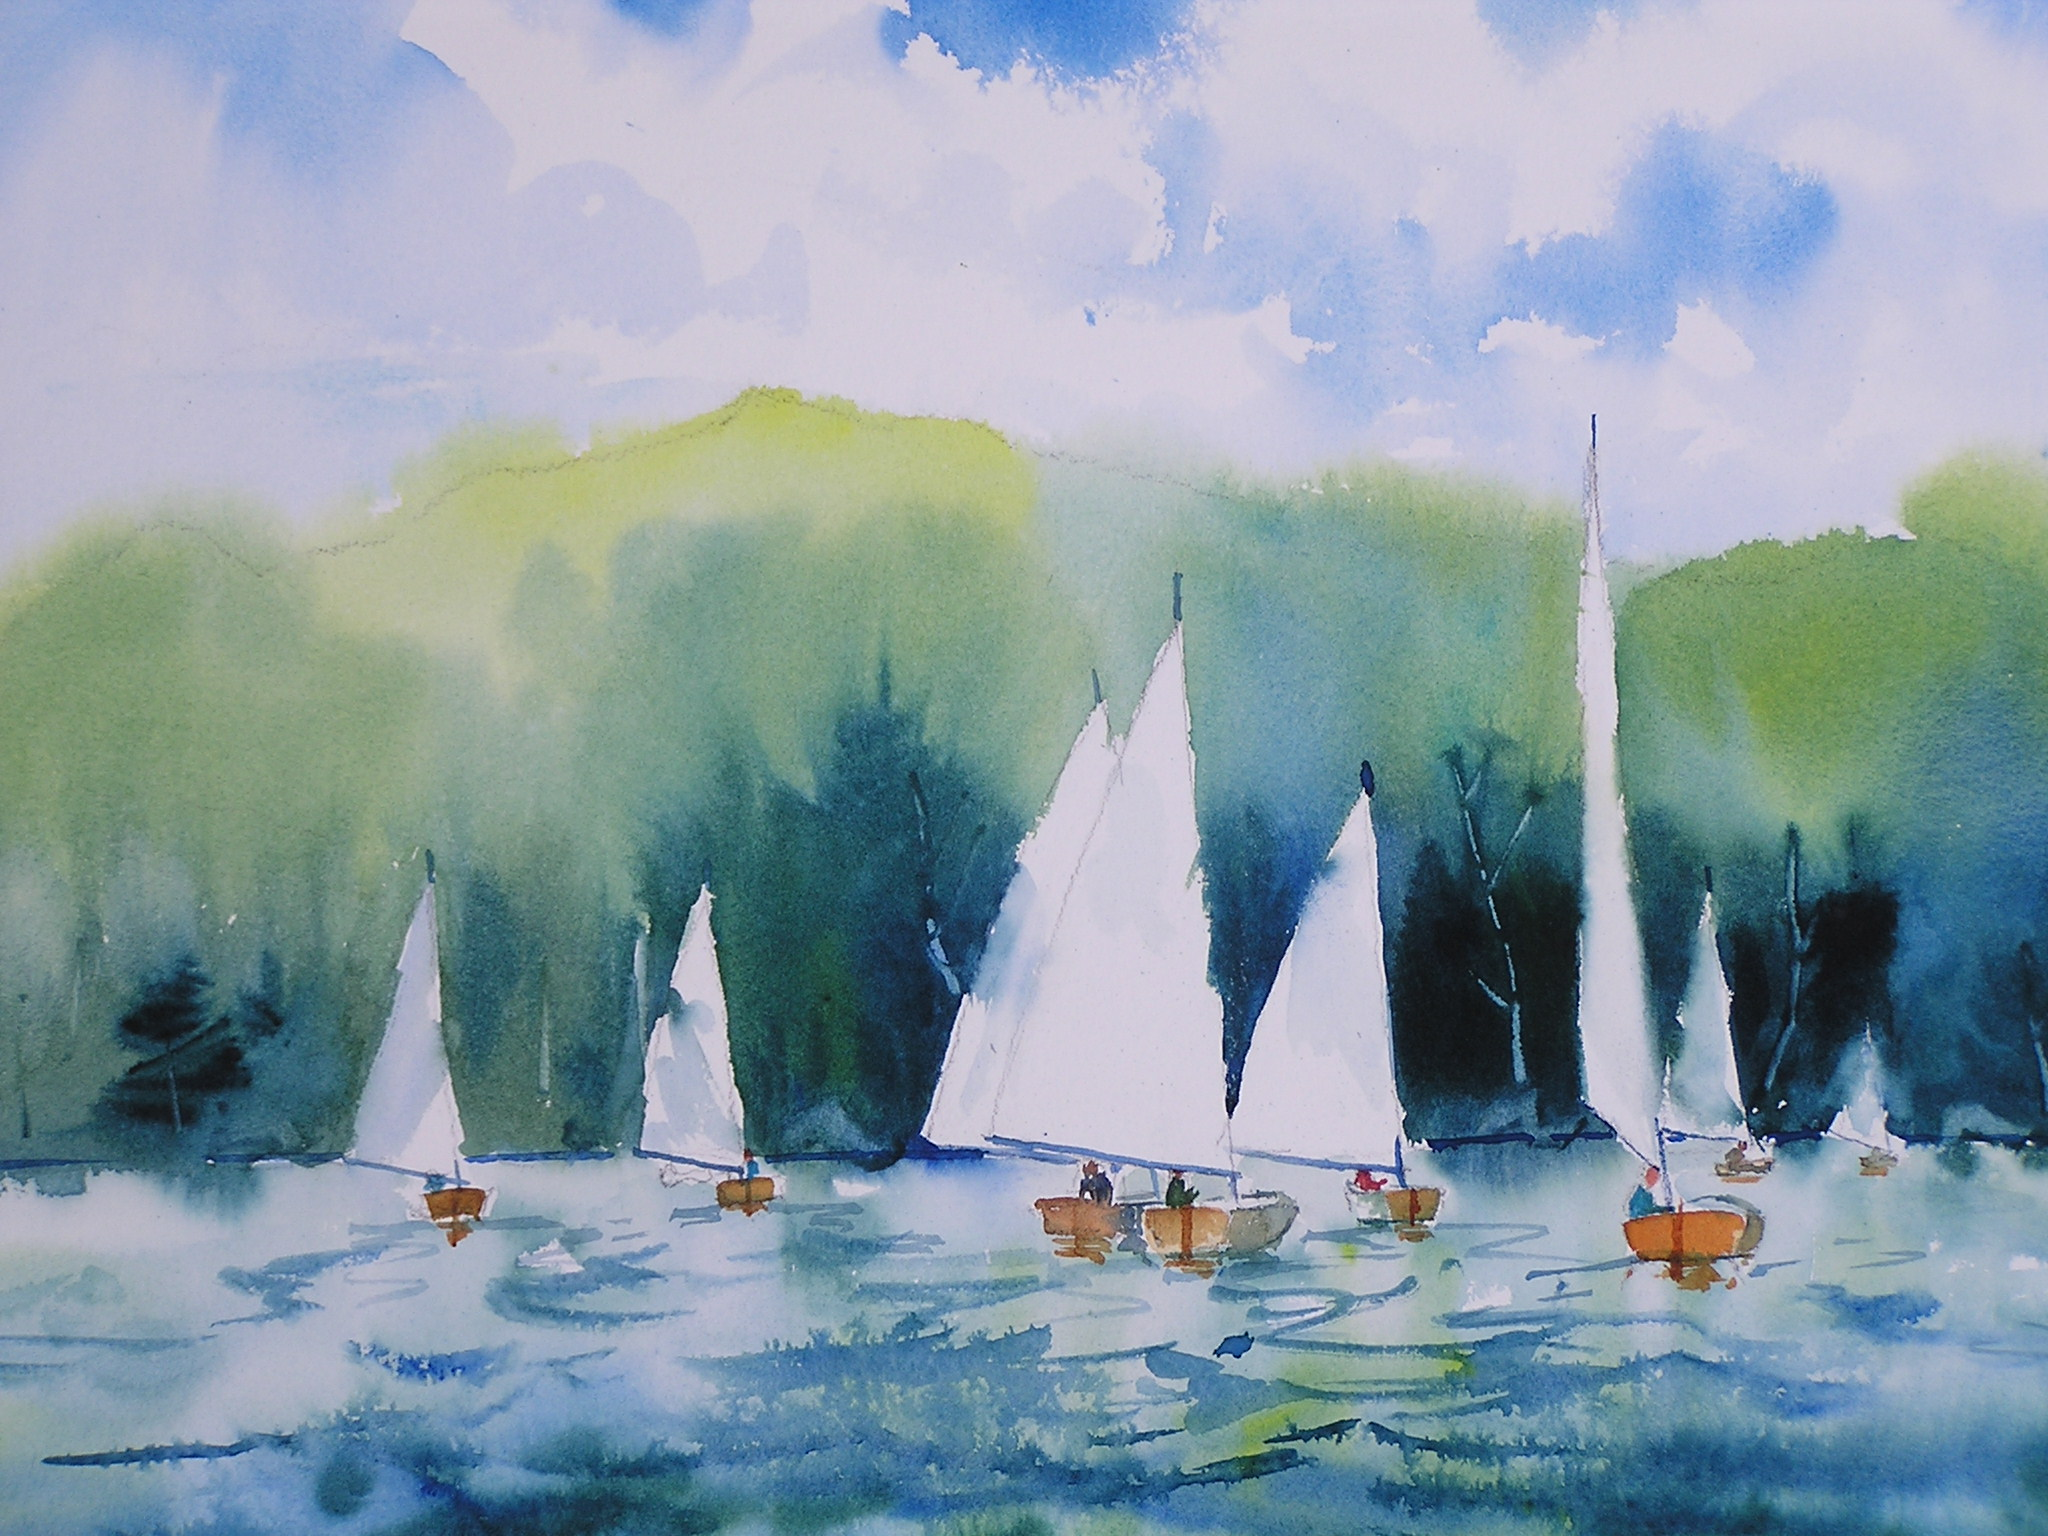 Sailing regatta on Lake George, NY